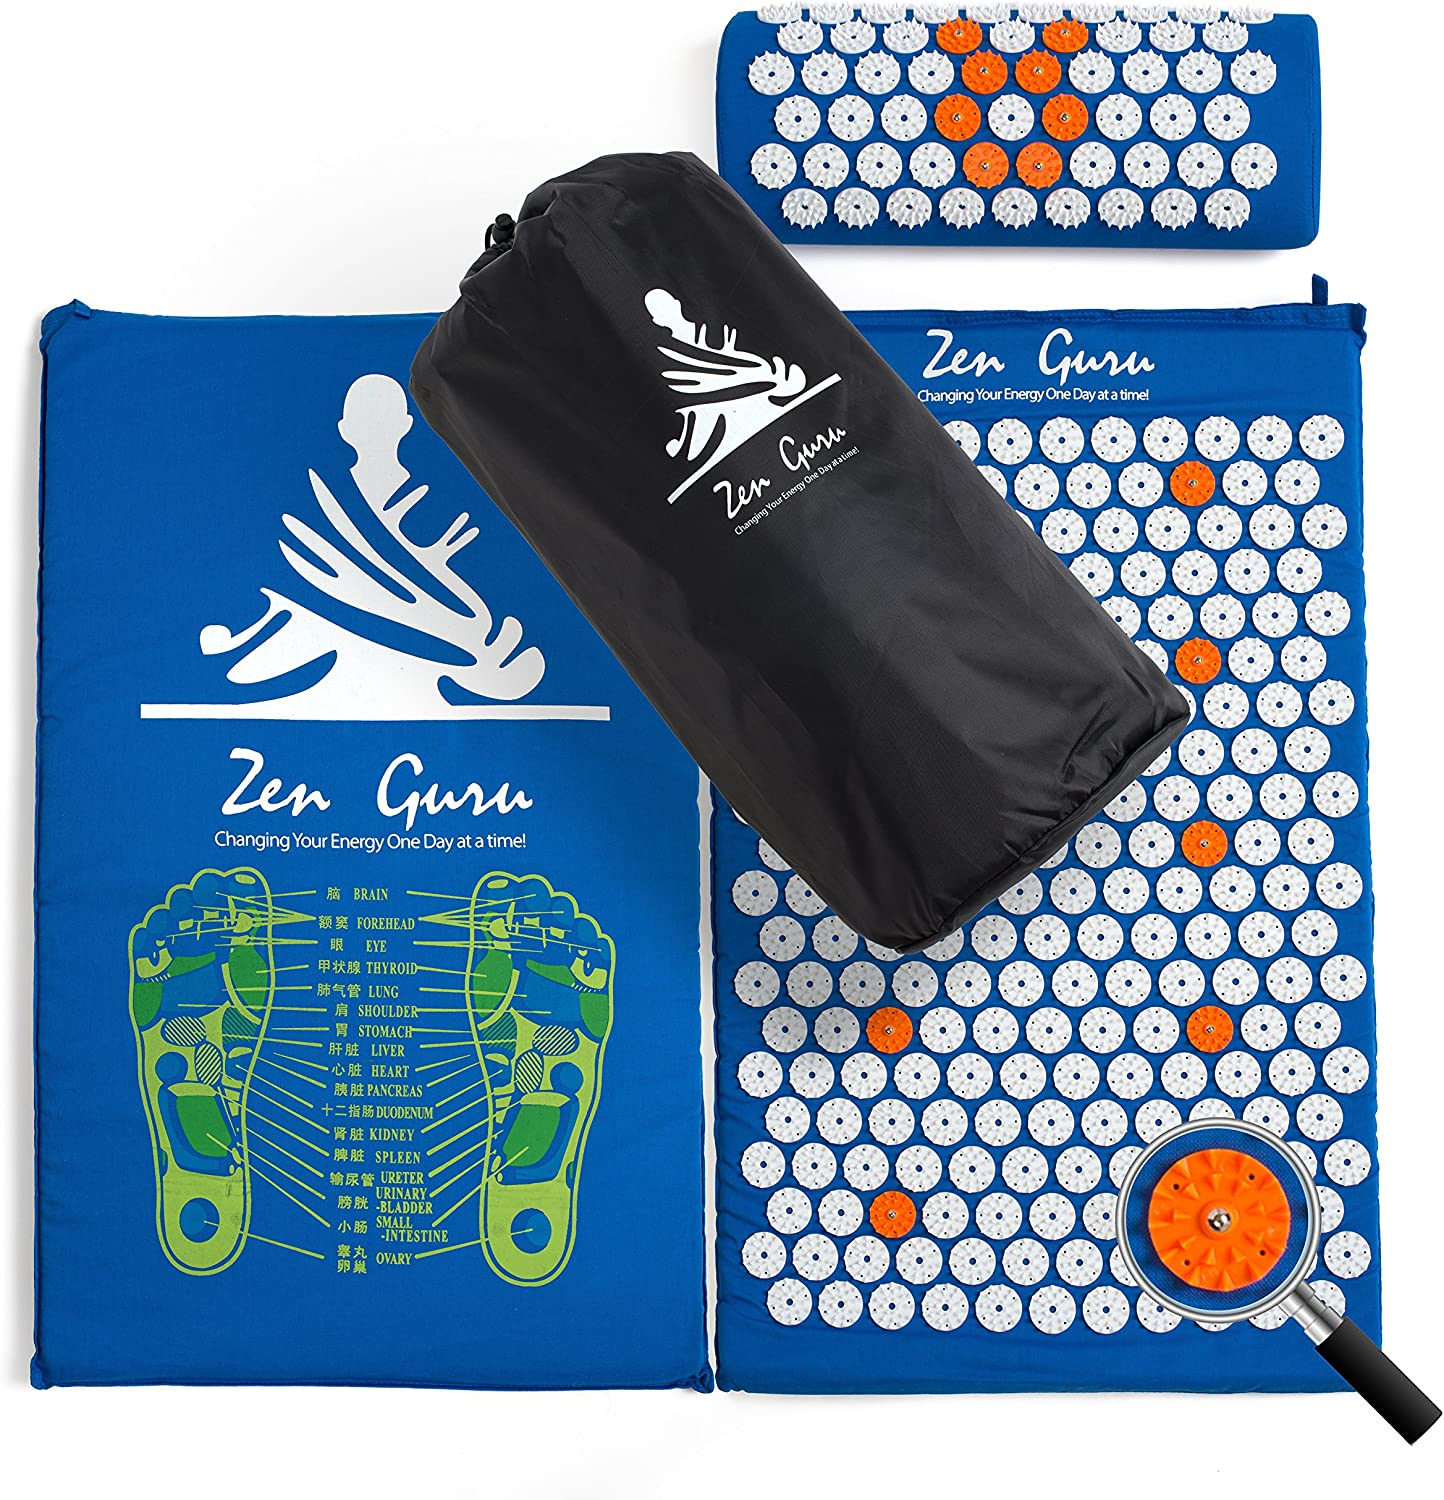 ZenGuru Best Acupressure Mat & Pillow Set - Sale - Effective Remedy for Pain and Stress Relief - with Magnet Therapy - Free Bonuses: Carry Bag & Reflexology Foot Chart - Lifetime Money Back (Blue): Health & Personal Care